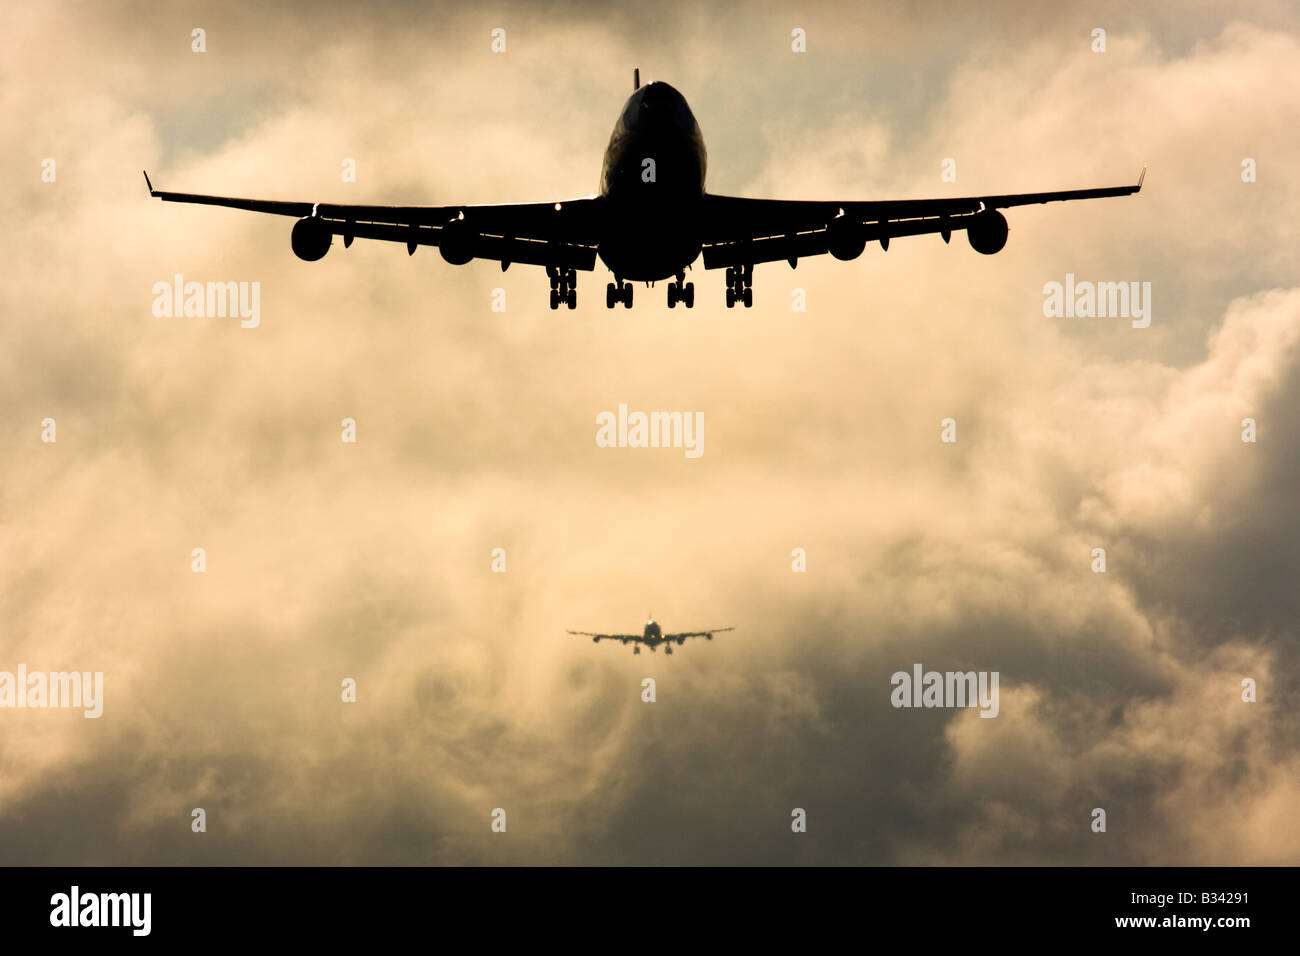 Wake turbulence forms behind aircrafts as they passes through the clouds when descending for landing. London Heathrow - Stock Image